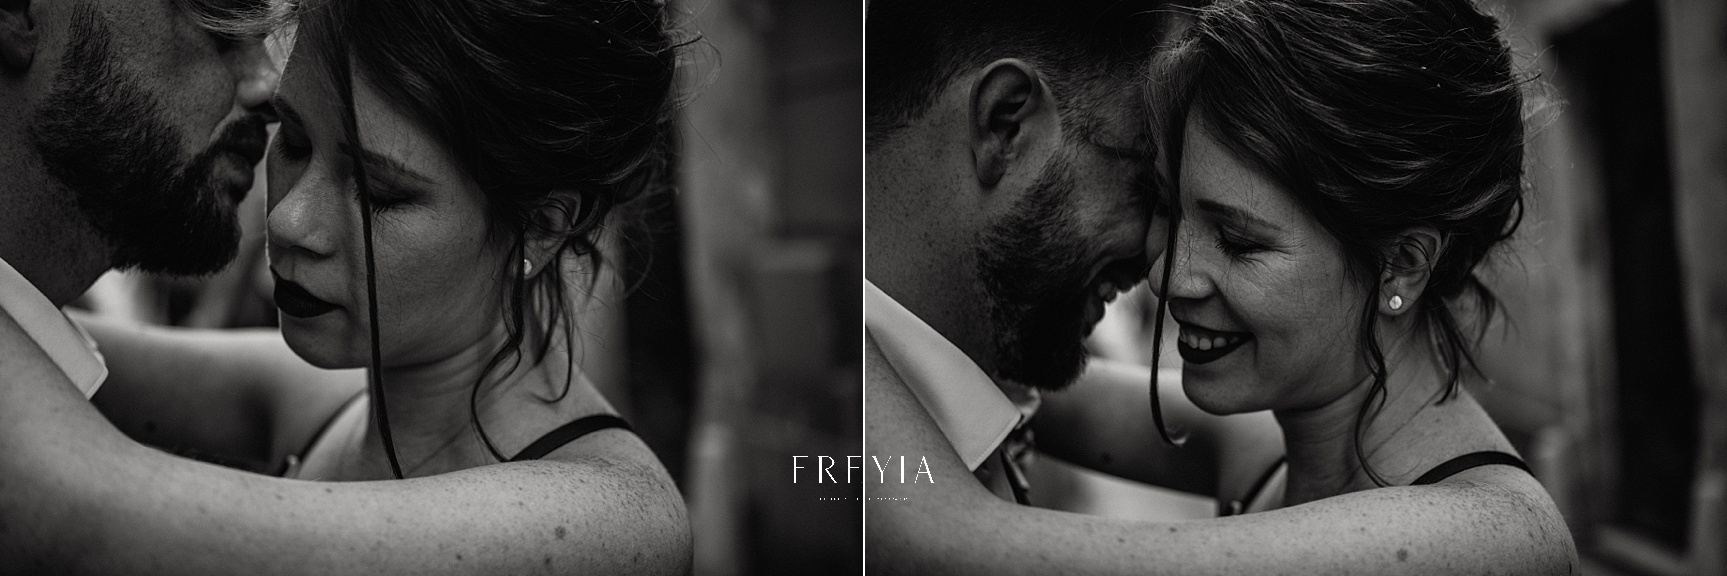 P + F |  mariage reportage alternatif moody intime vintage naturel boho boheme |  PHOTOGRAPHE mariage PARIS france destination  | FREYIA photography_-241.jpg